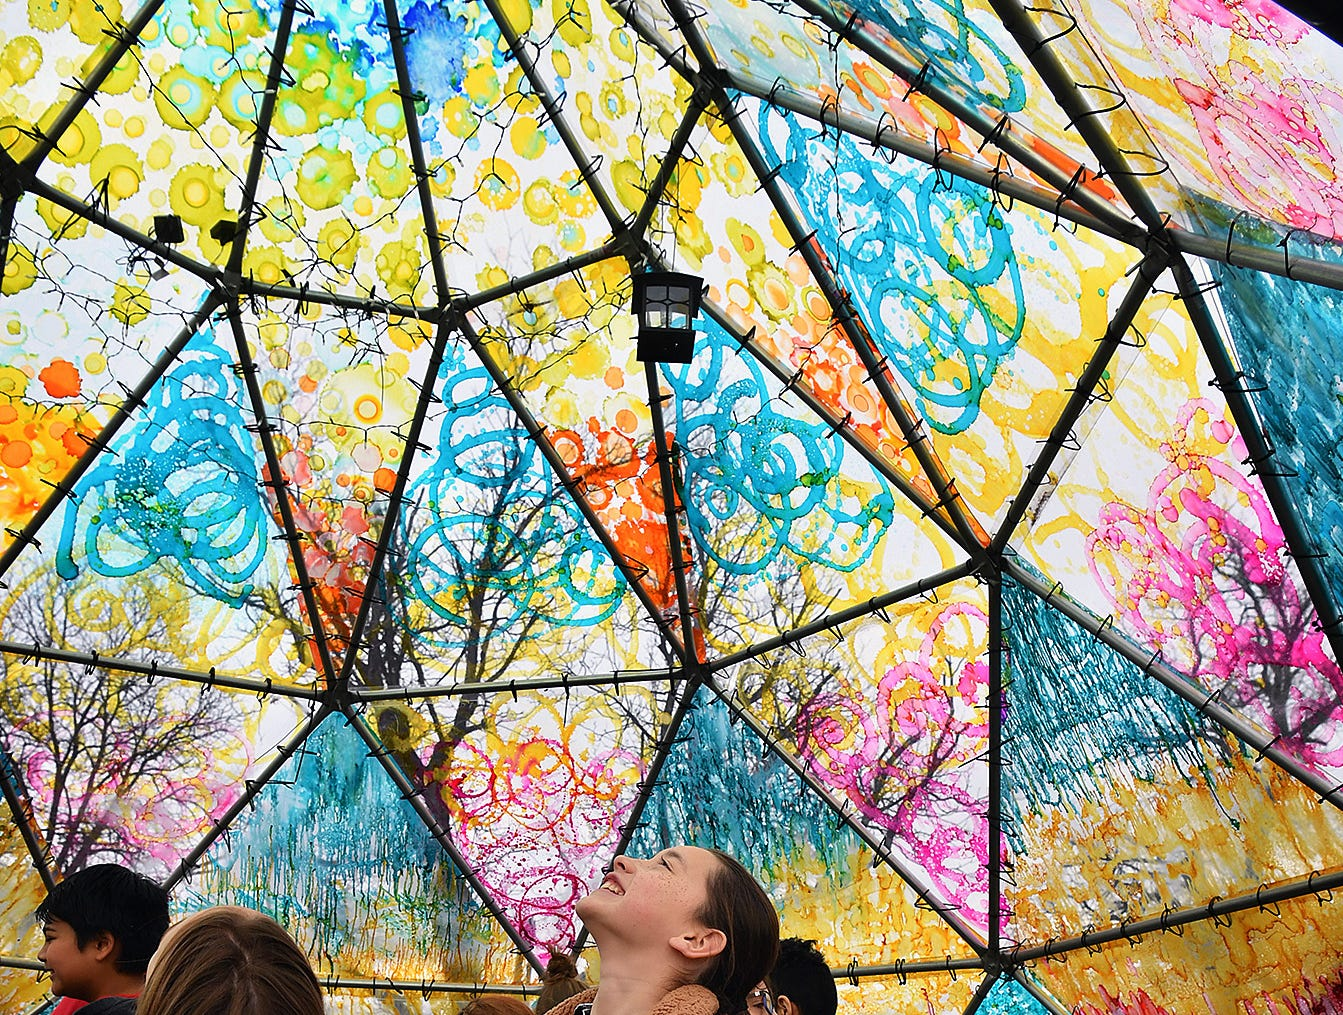 Lauren Pham and about 50 other Olney Elementary fifth graders explored the Wichita Dome art installation at Nexus Square during a field trip Friday morning.